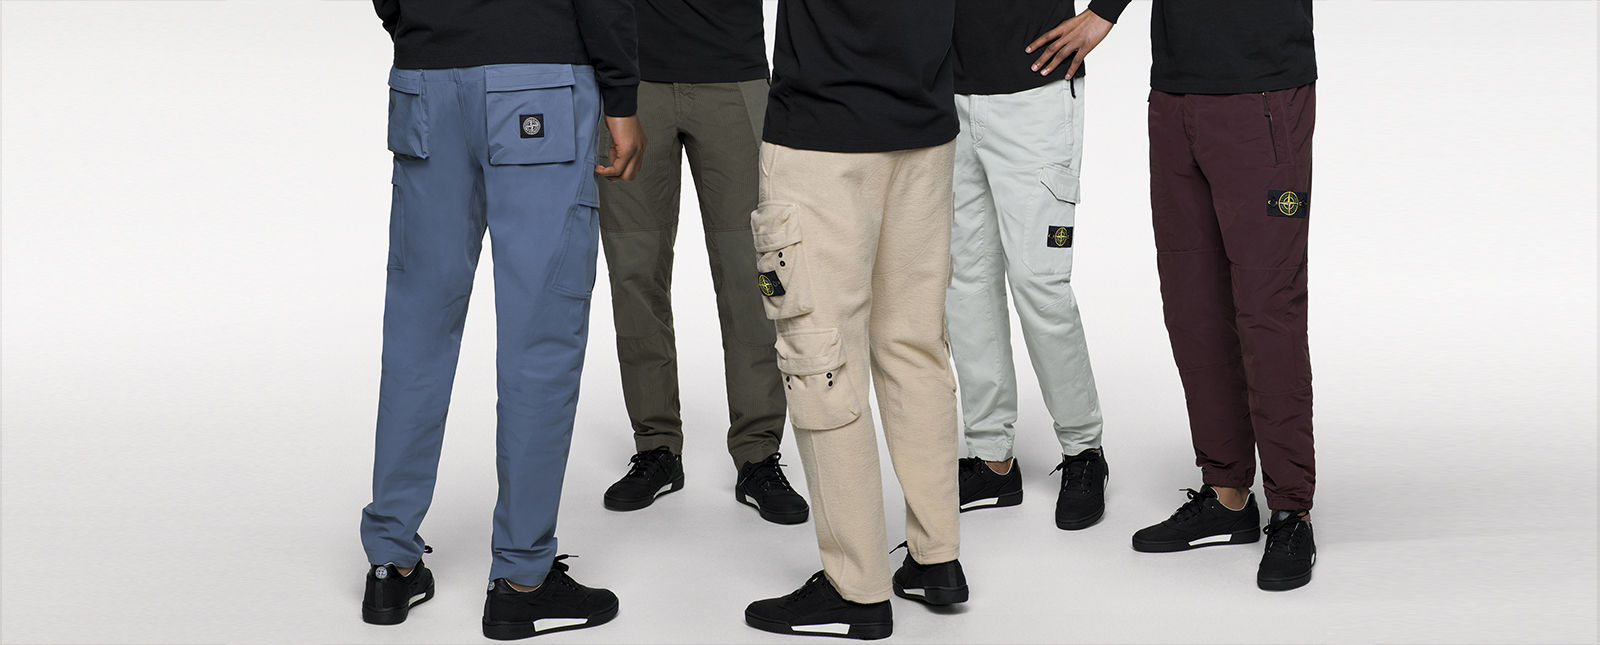 Five models wearing different styles of pants with different styles of pockets.